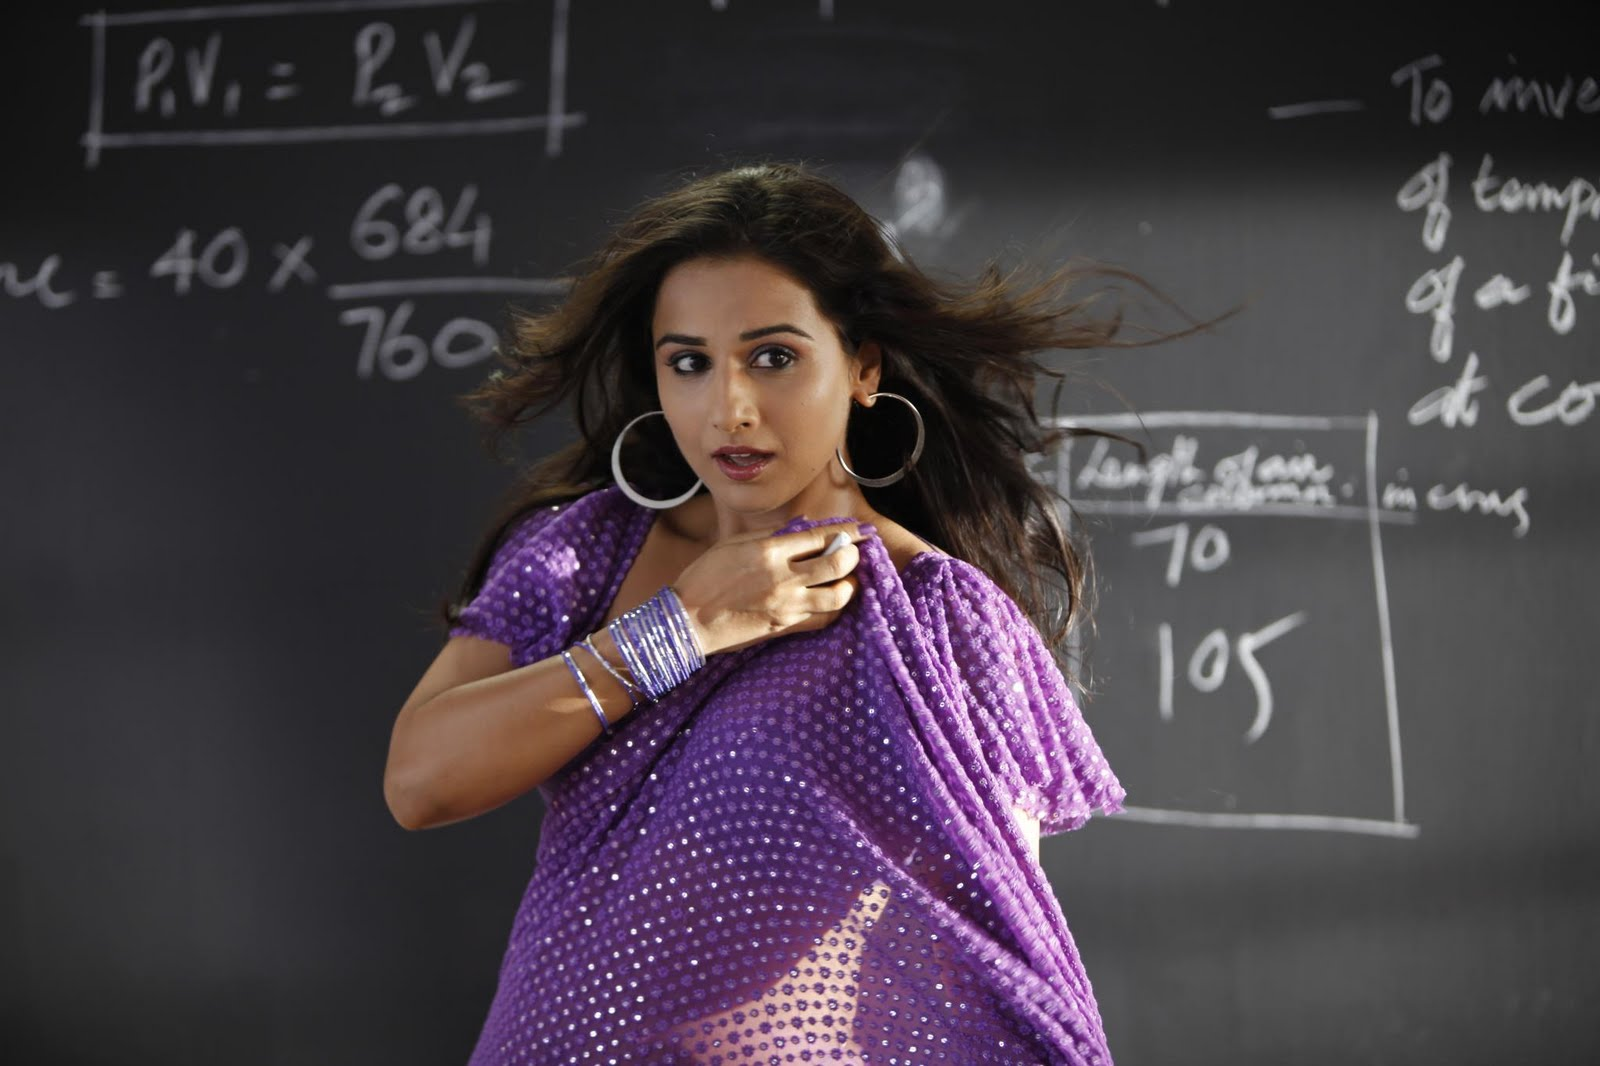 vidya balan high quality wallpapers - Vidya Balan High Quality Wallpapers HD Wallpapers